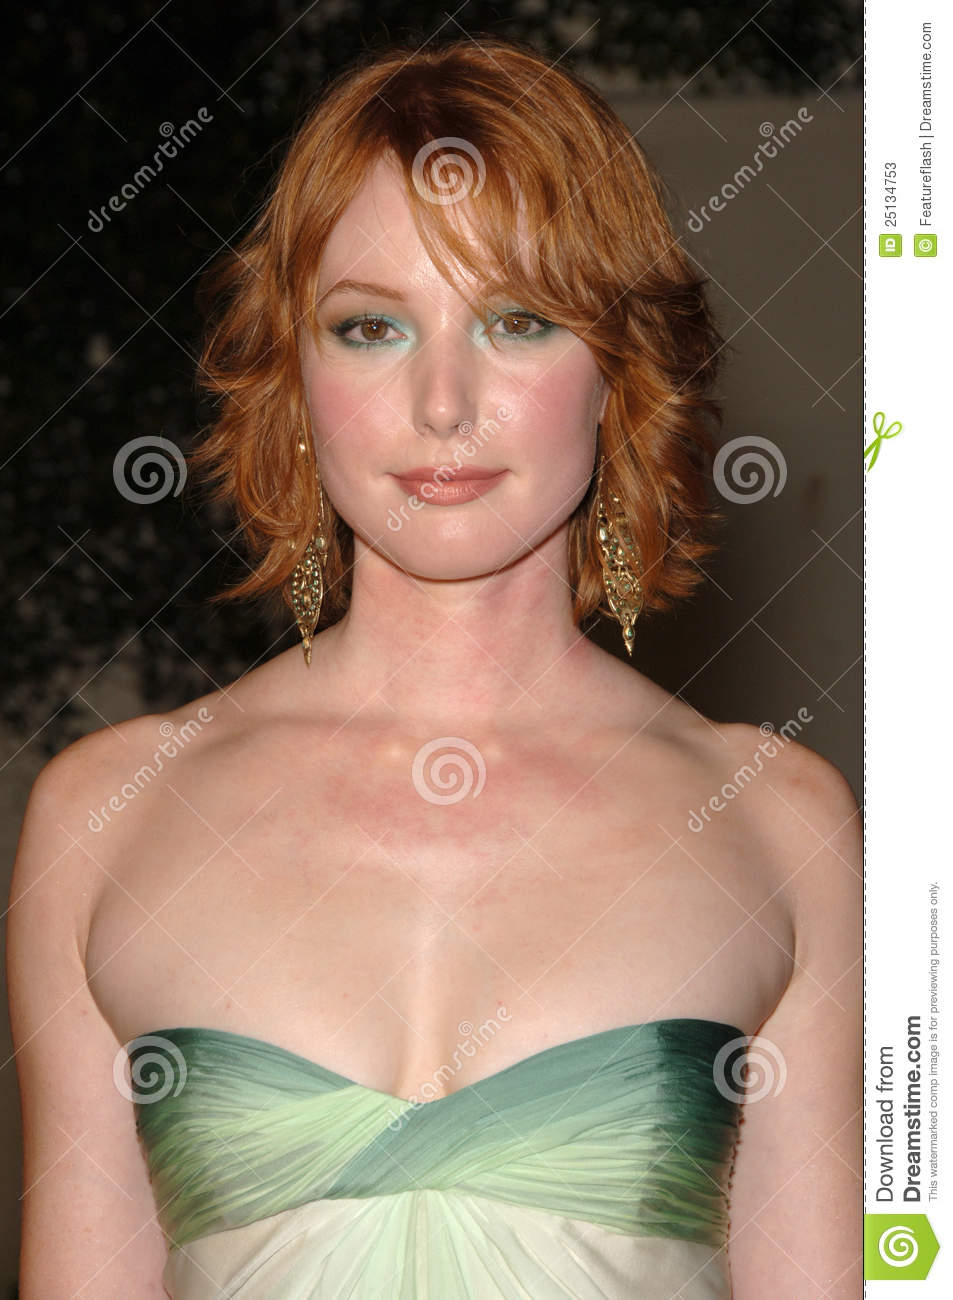 Alicia Witt nude (43 fotos) Porno, YouTube, cleavage